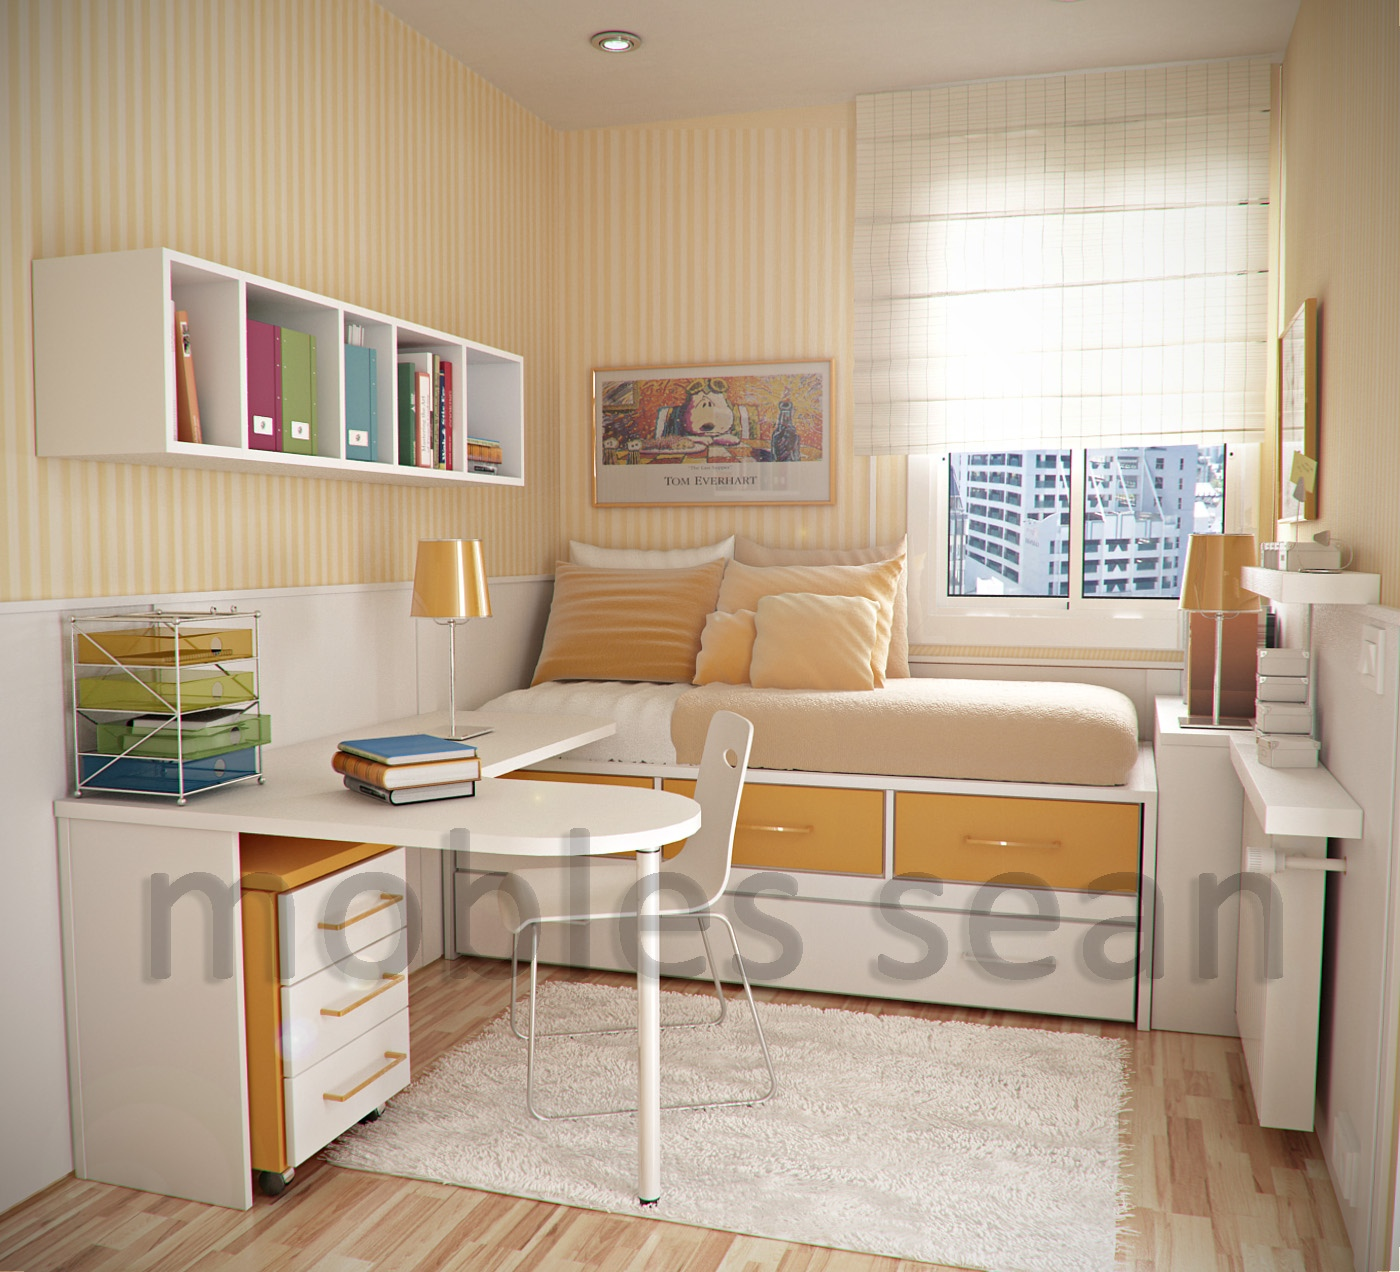 Very small bedroom solutions - Very Small Bedroom Solutions 21